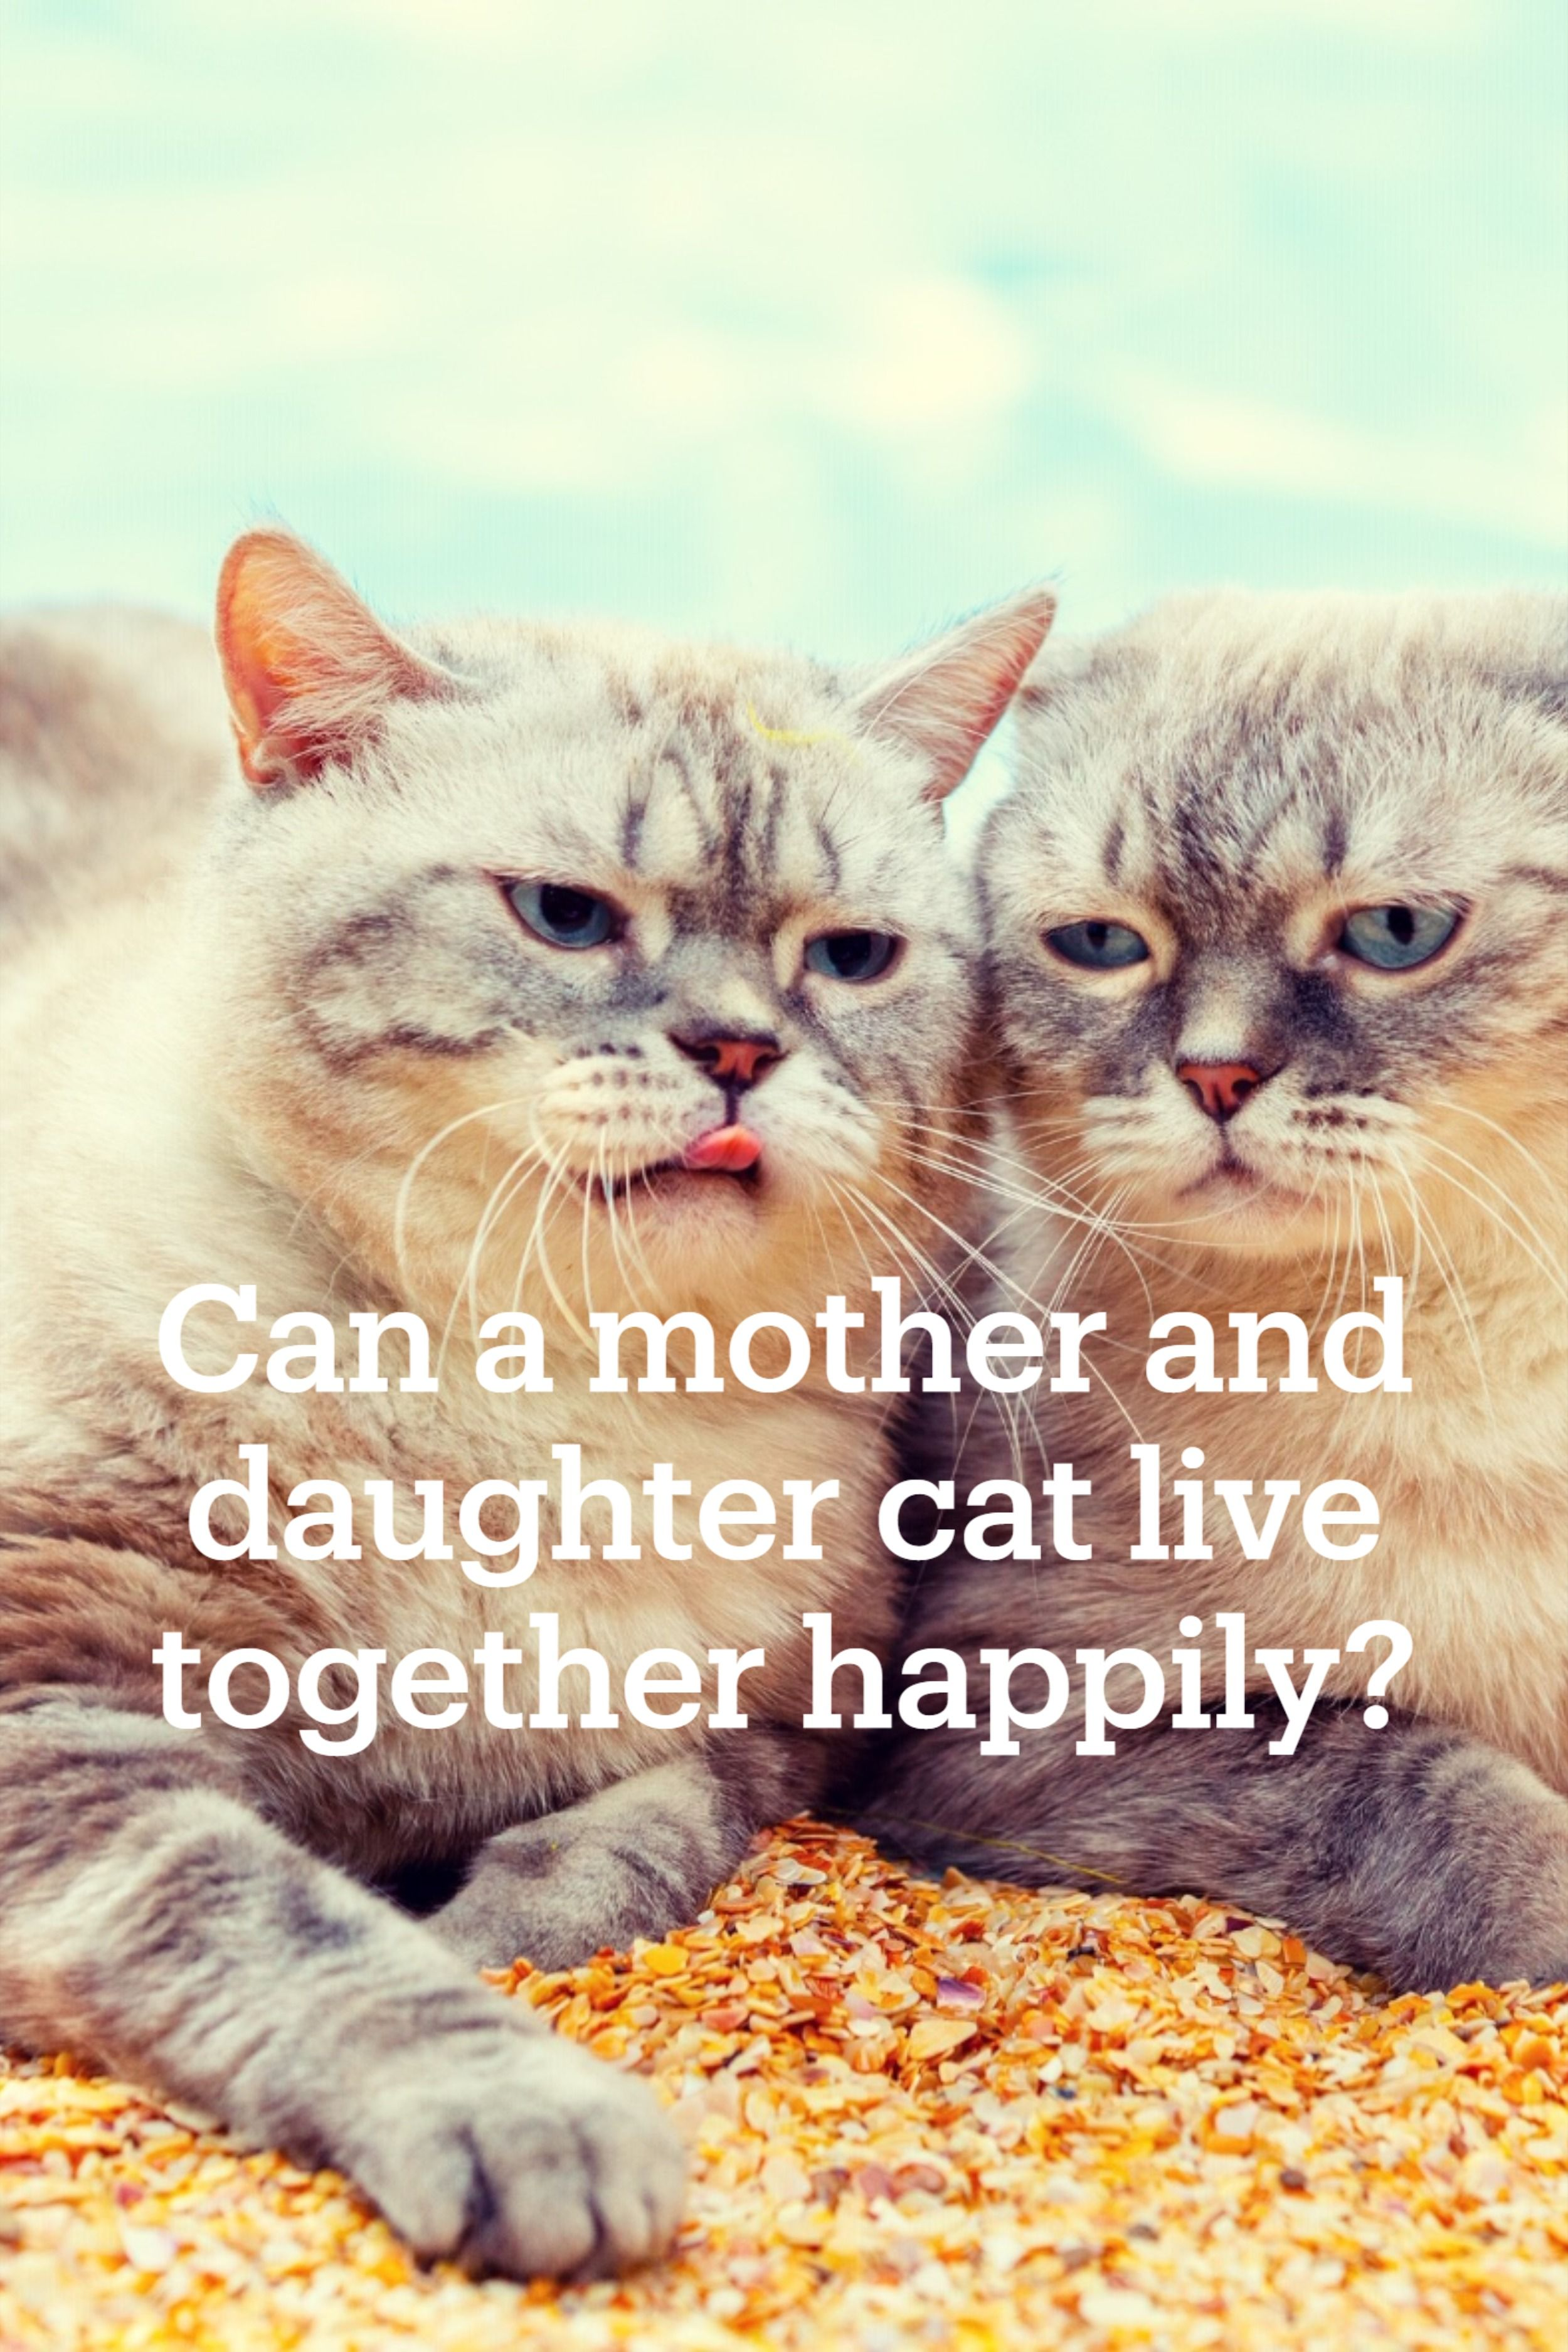 Can A Mother And Daughter Cat Live Together Happily In 2020 Cat Lovers Happily Daughter